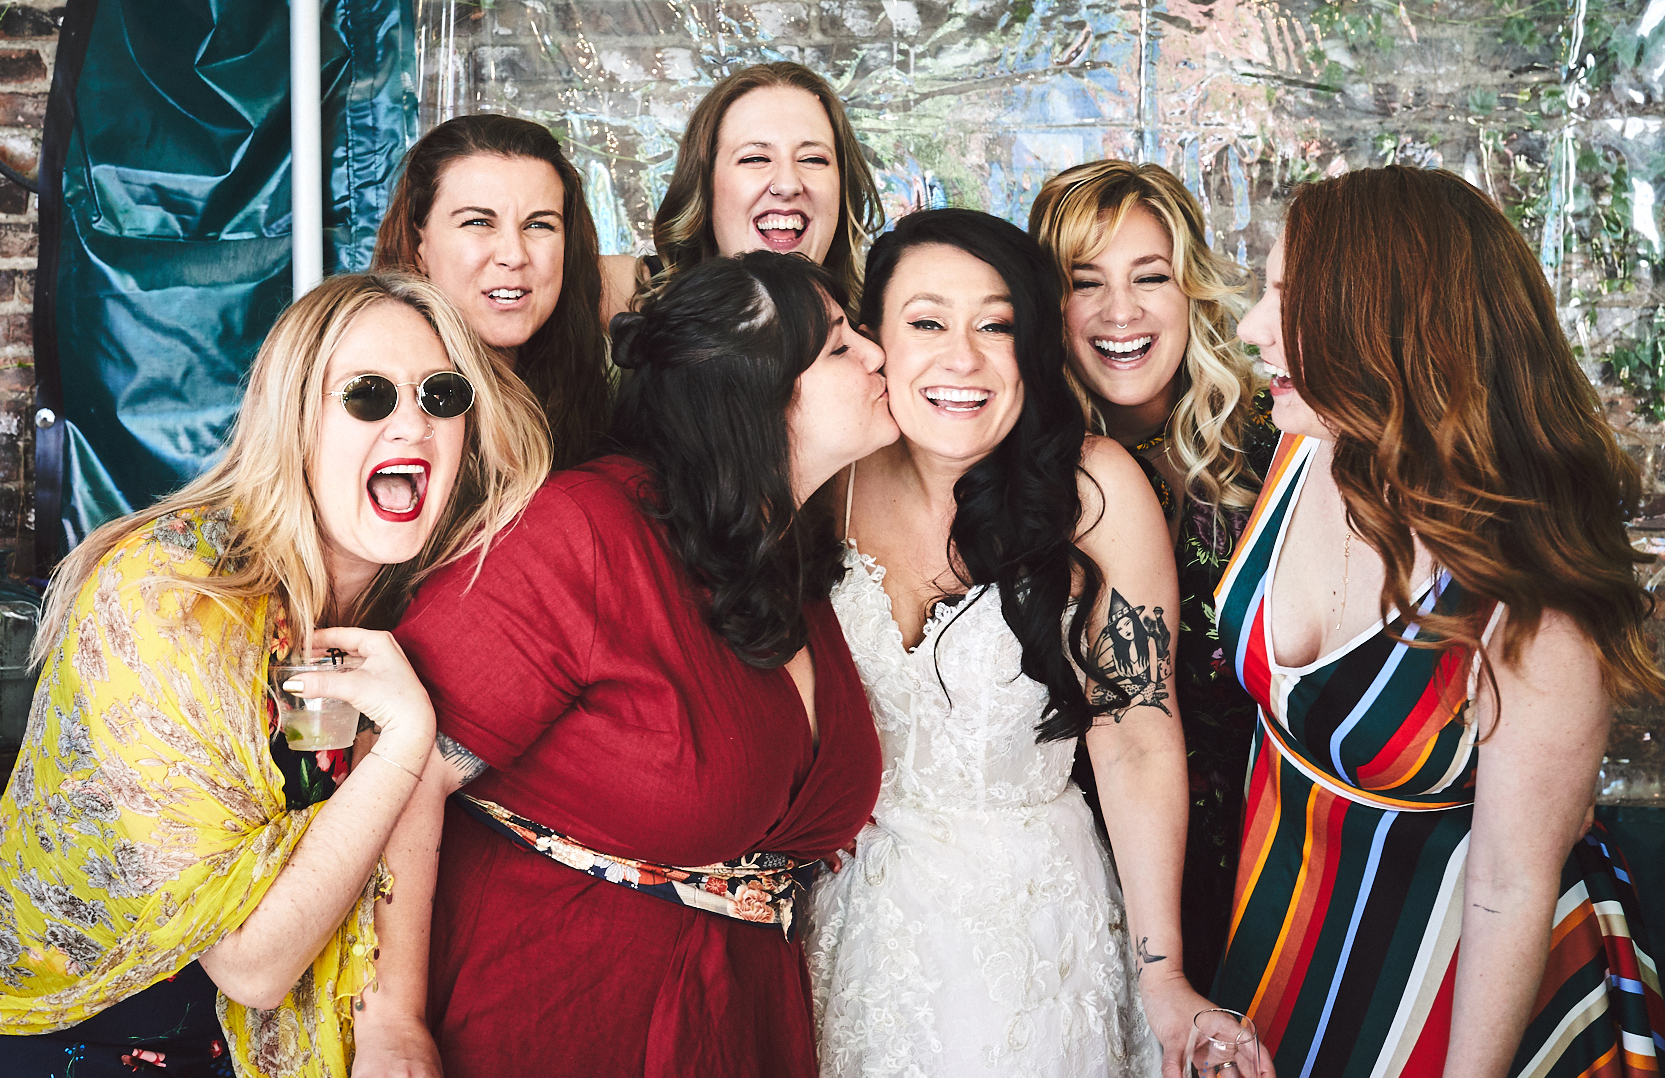 190518_SpringThreesBreweryWedding_By_BriJohnsonWeddings_0102.jpg